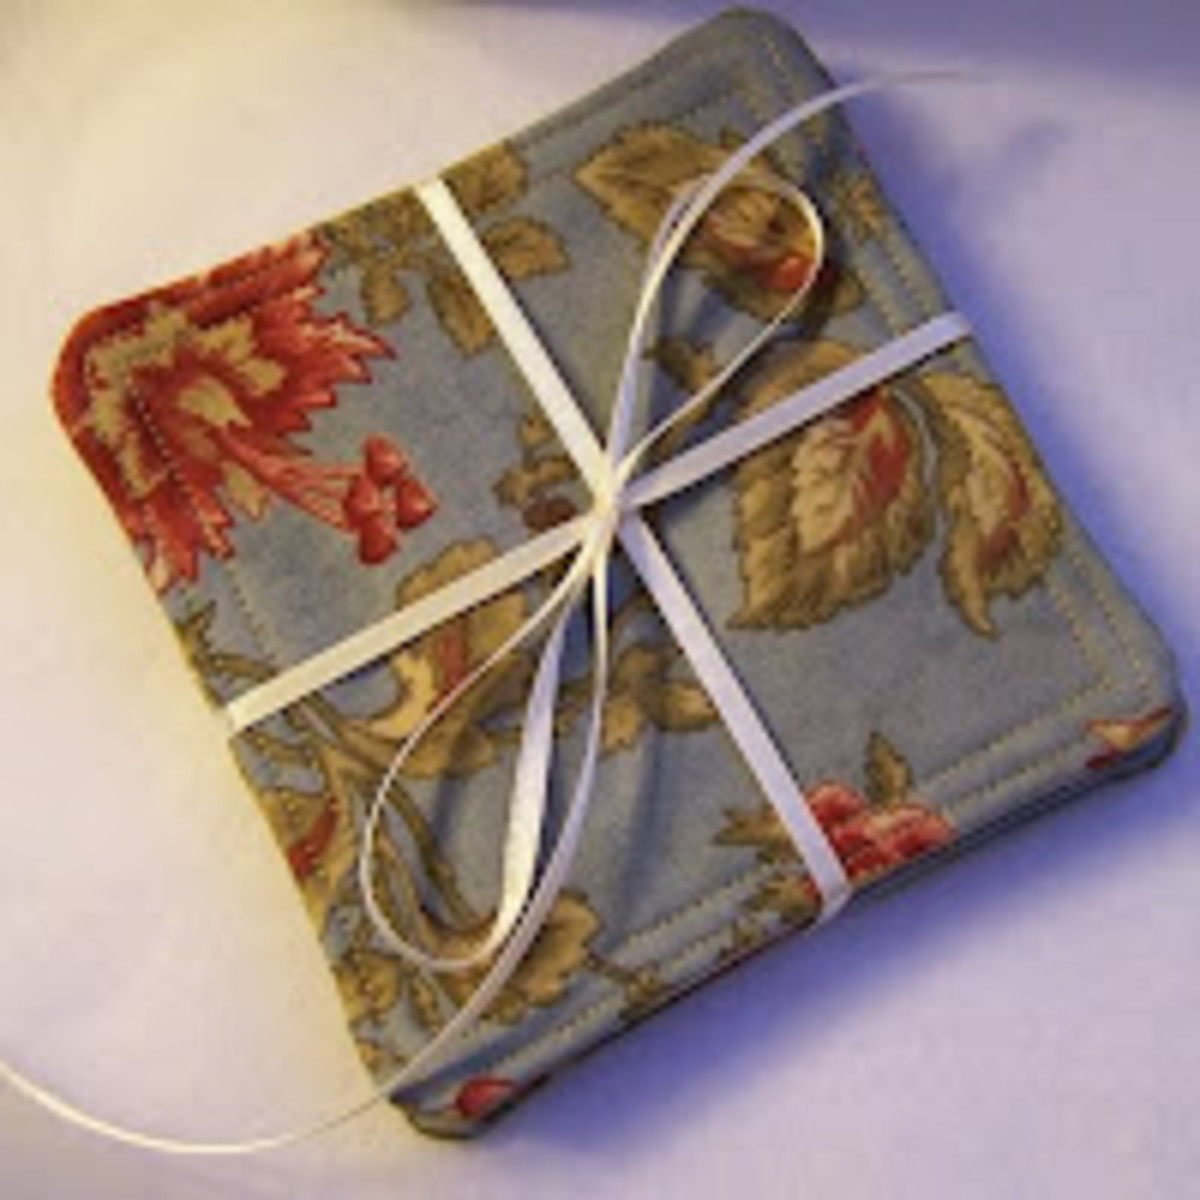 A set of coasters makes a lovely hostess gift.